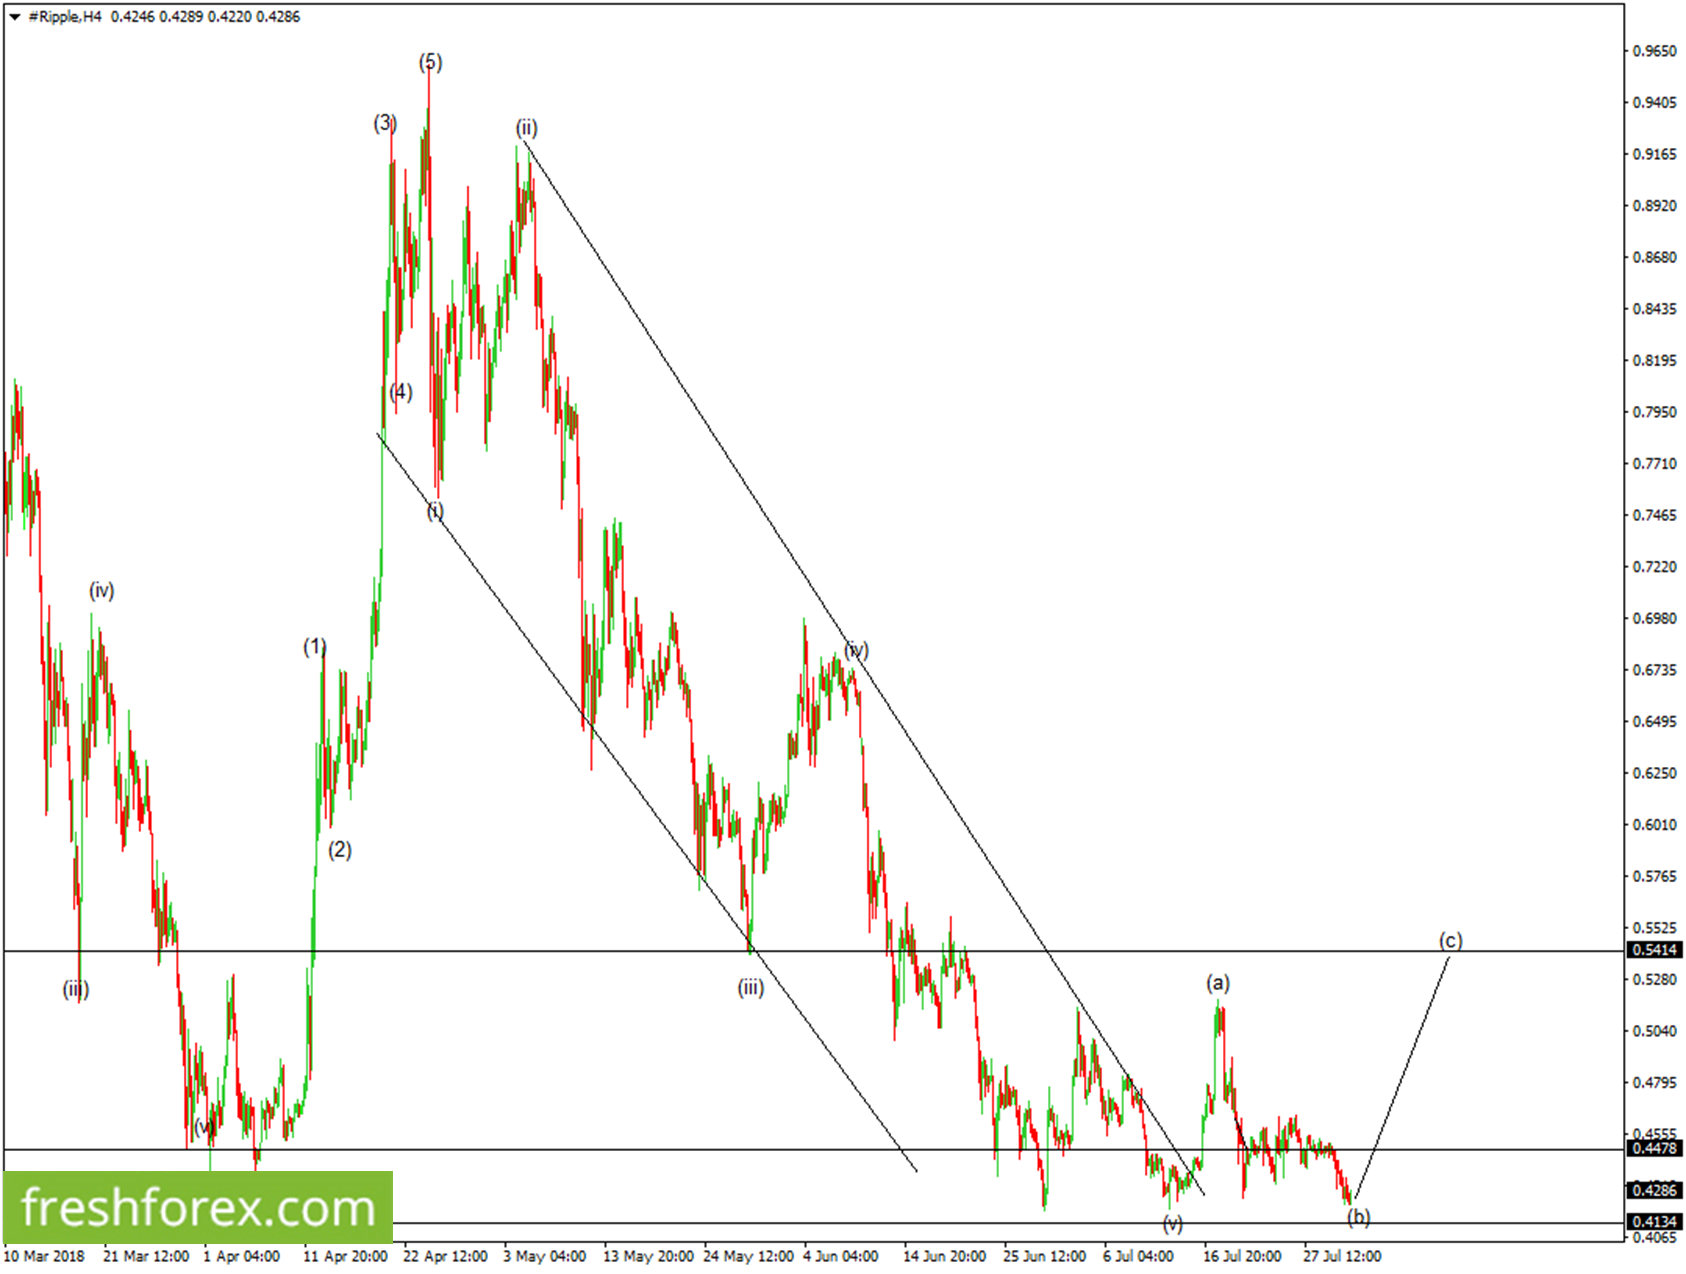 We're looking for a possible long position from 0.4134